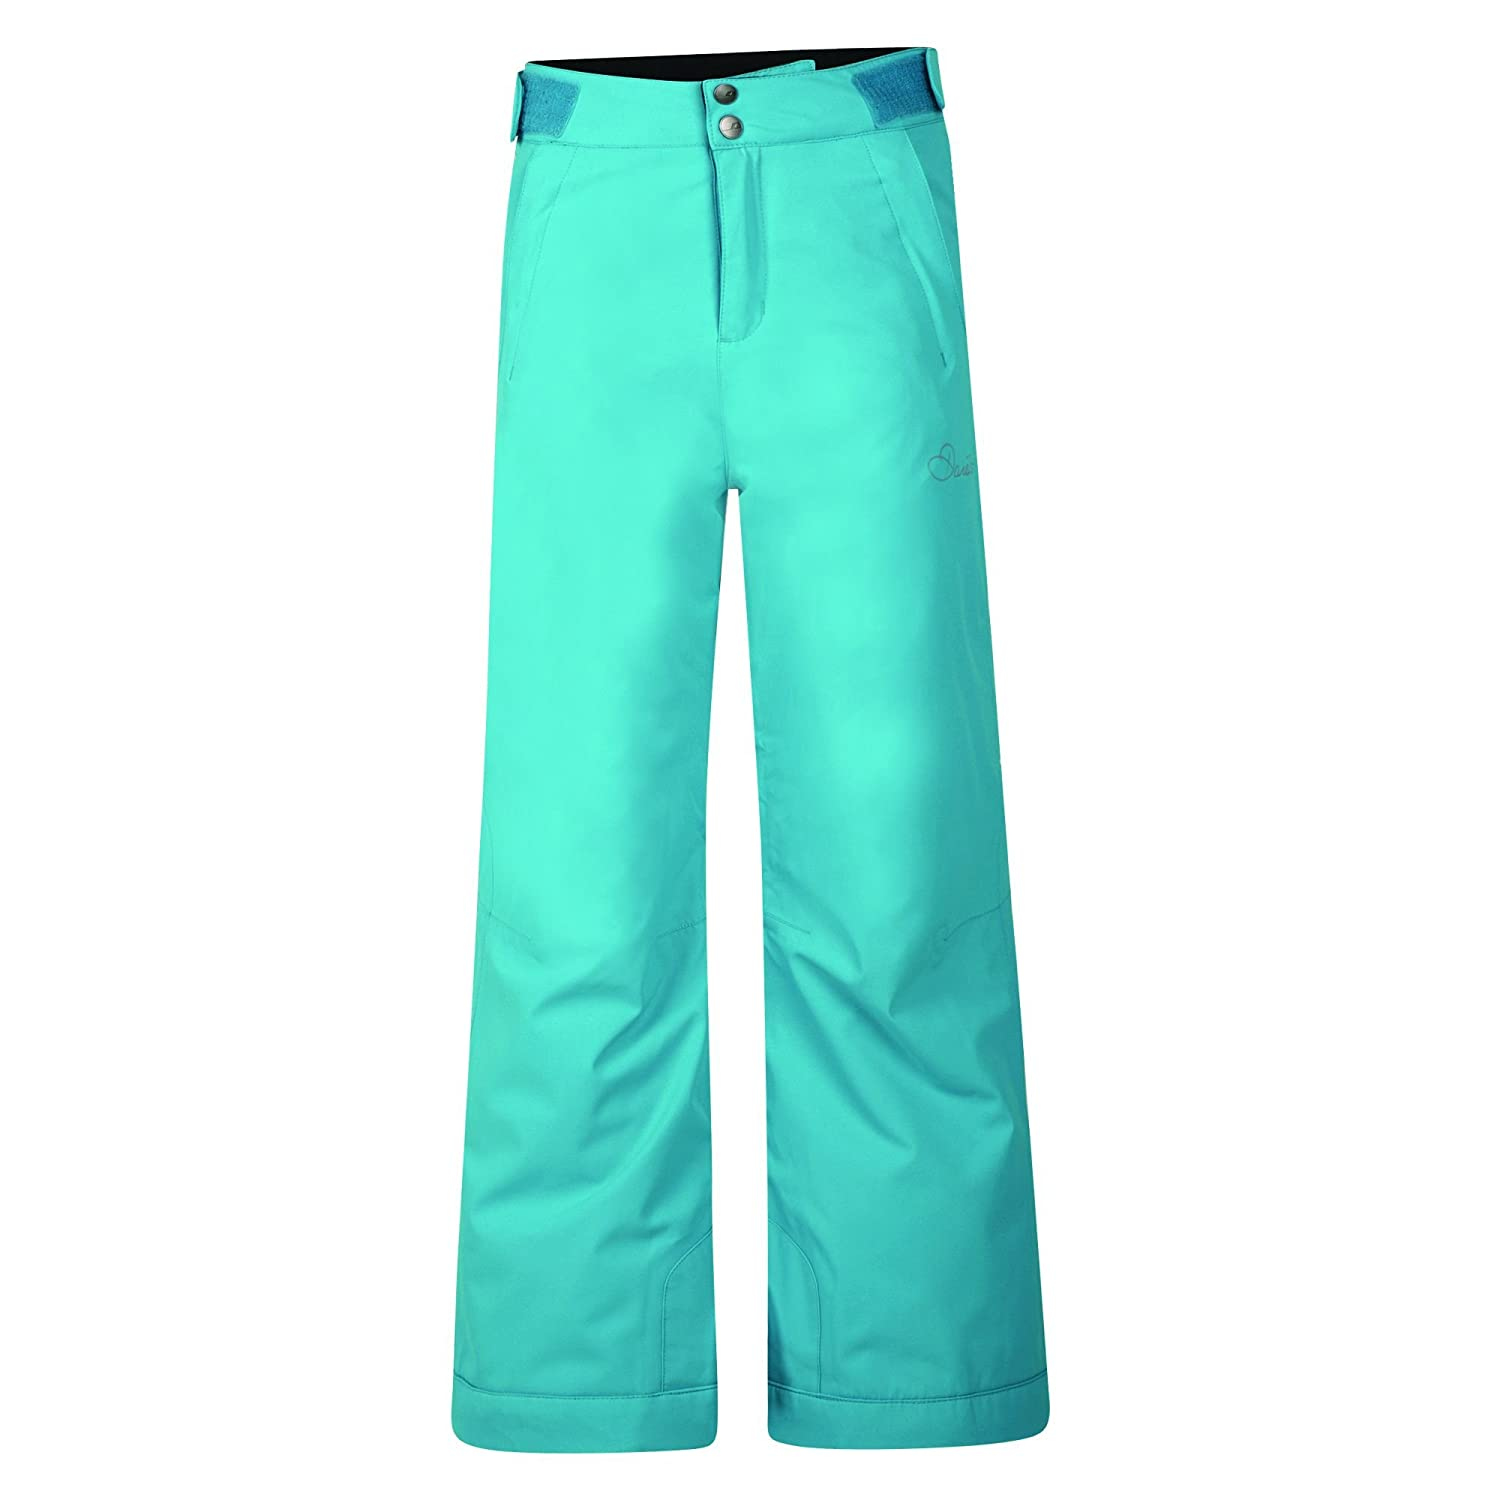 7f2a94152 Dare 2b Children's Whirlwind Ii Waterproof and Breathable Insulated Kids  Ski Pants Salopettes: Amazon.co.uk: Clothing